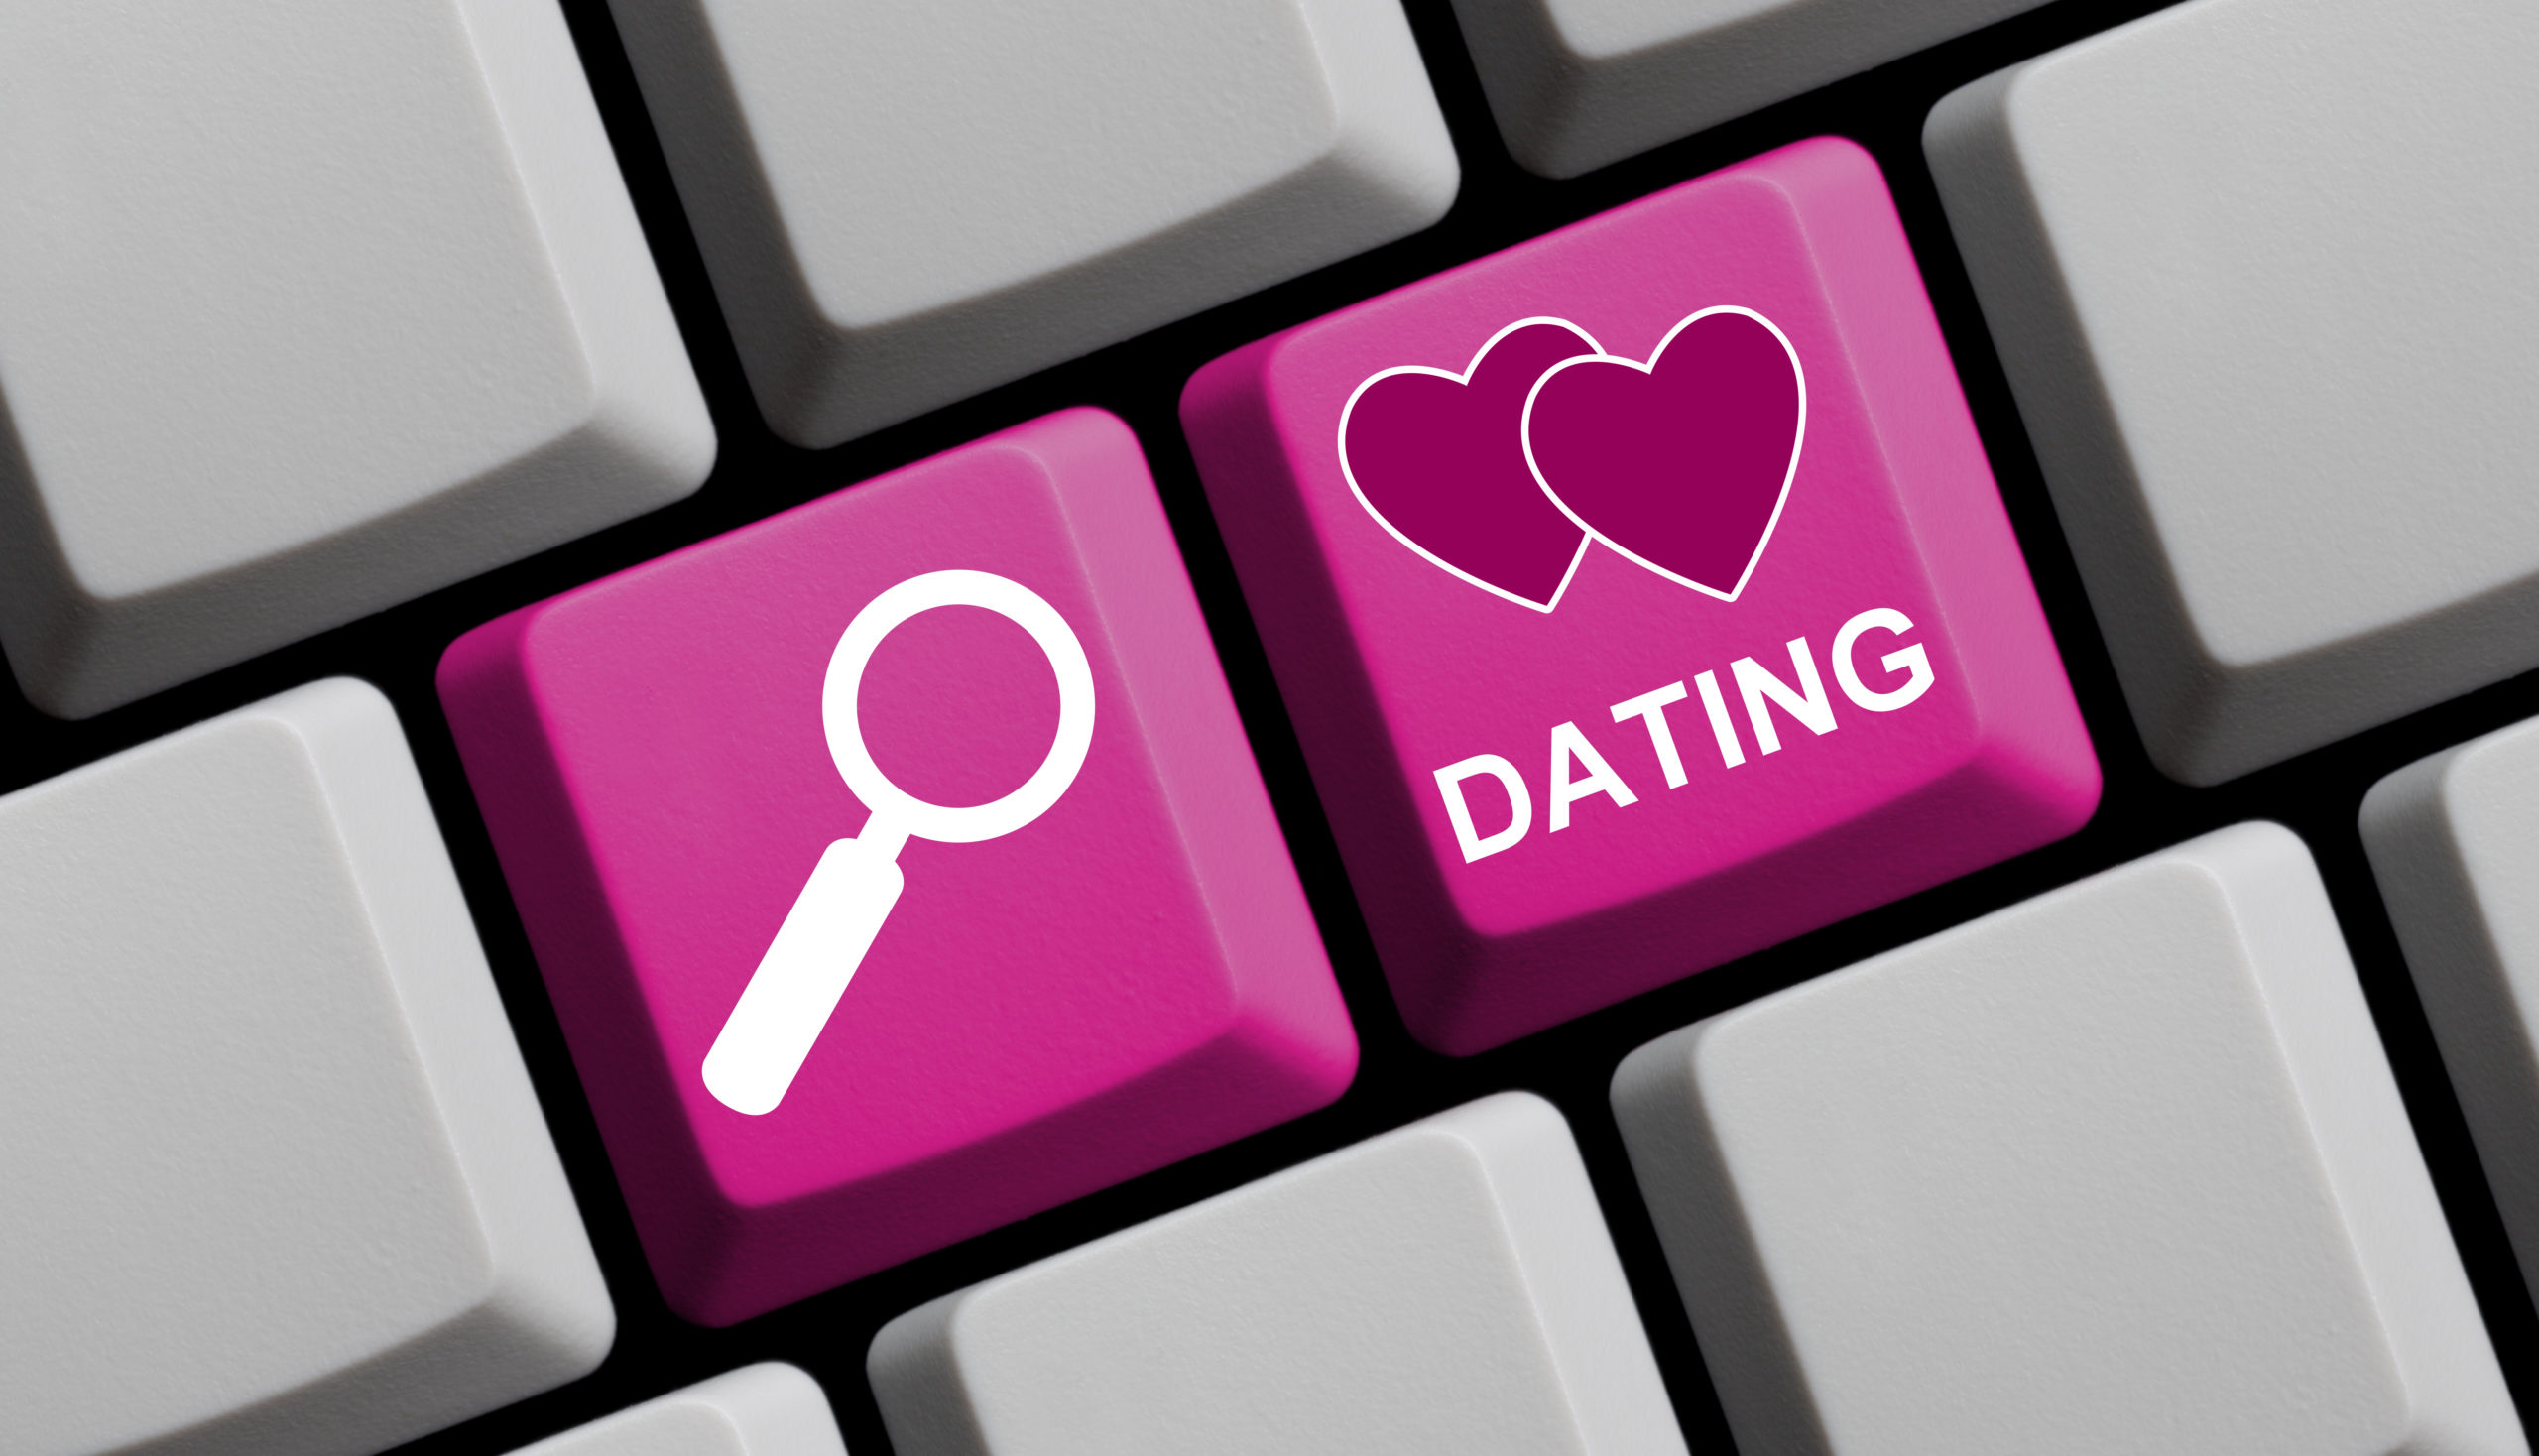 Keyboard with buttons for Online Dating